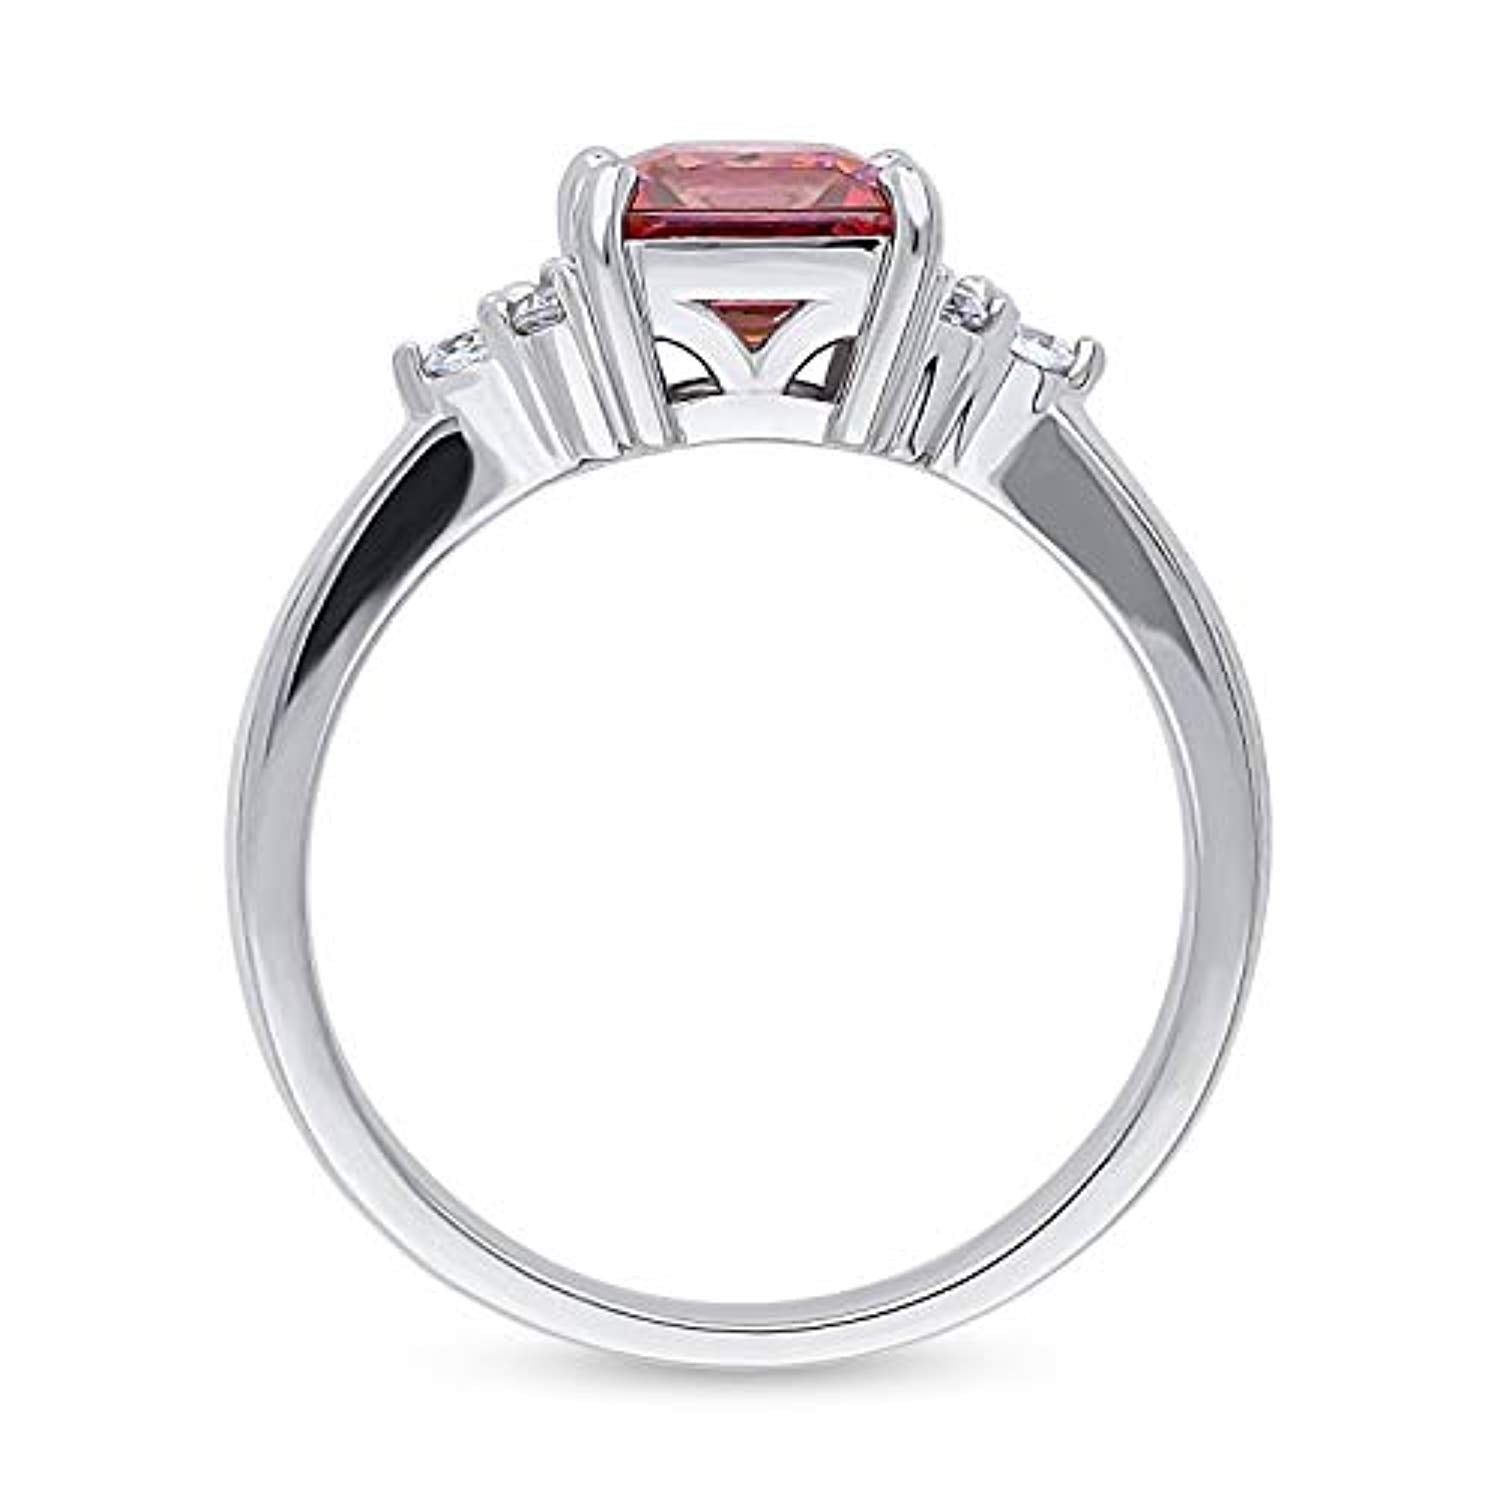 Rhodium Plated Sterling Silver Solitaire Promise Ring Made with Swarovski Zirconia Red Princess Cut